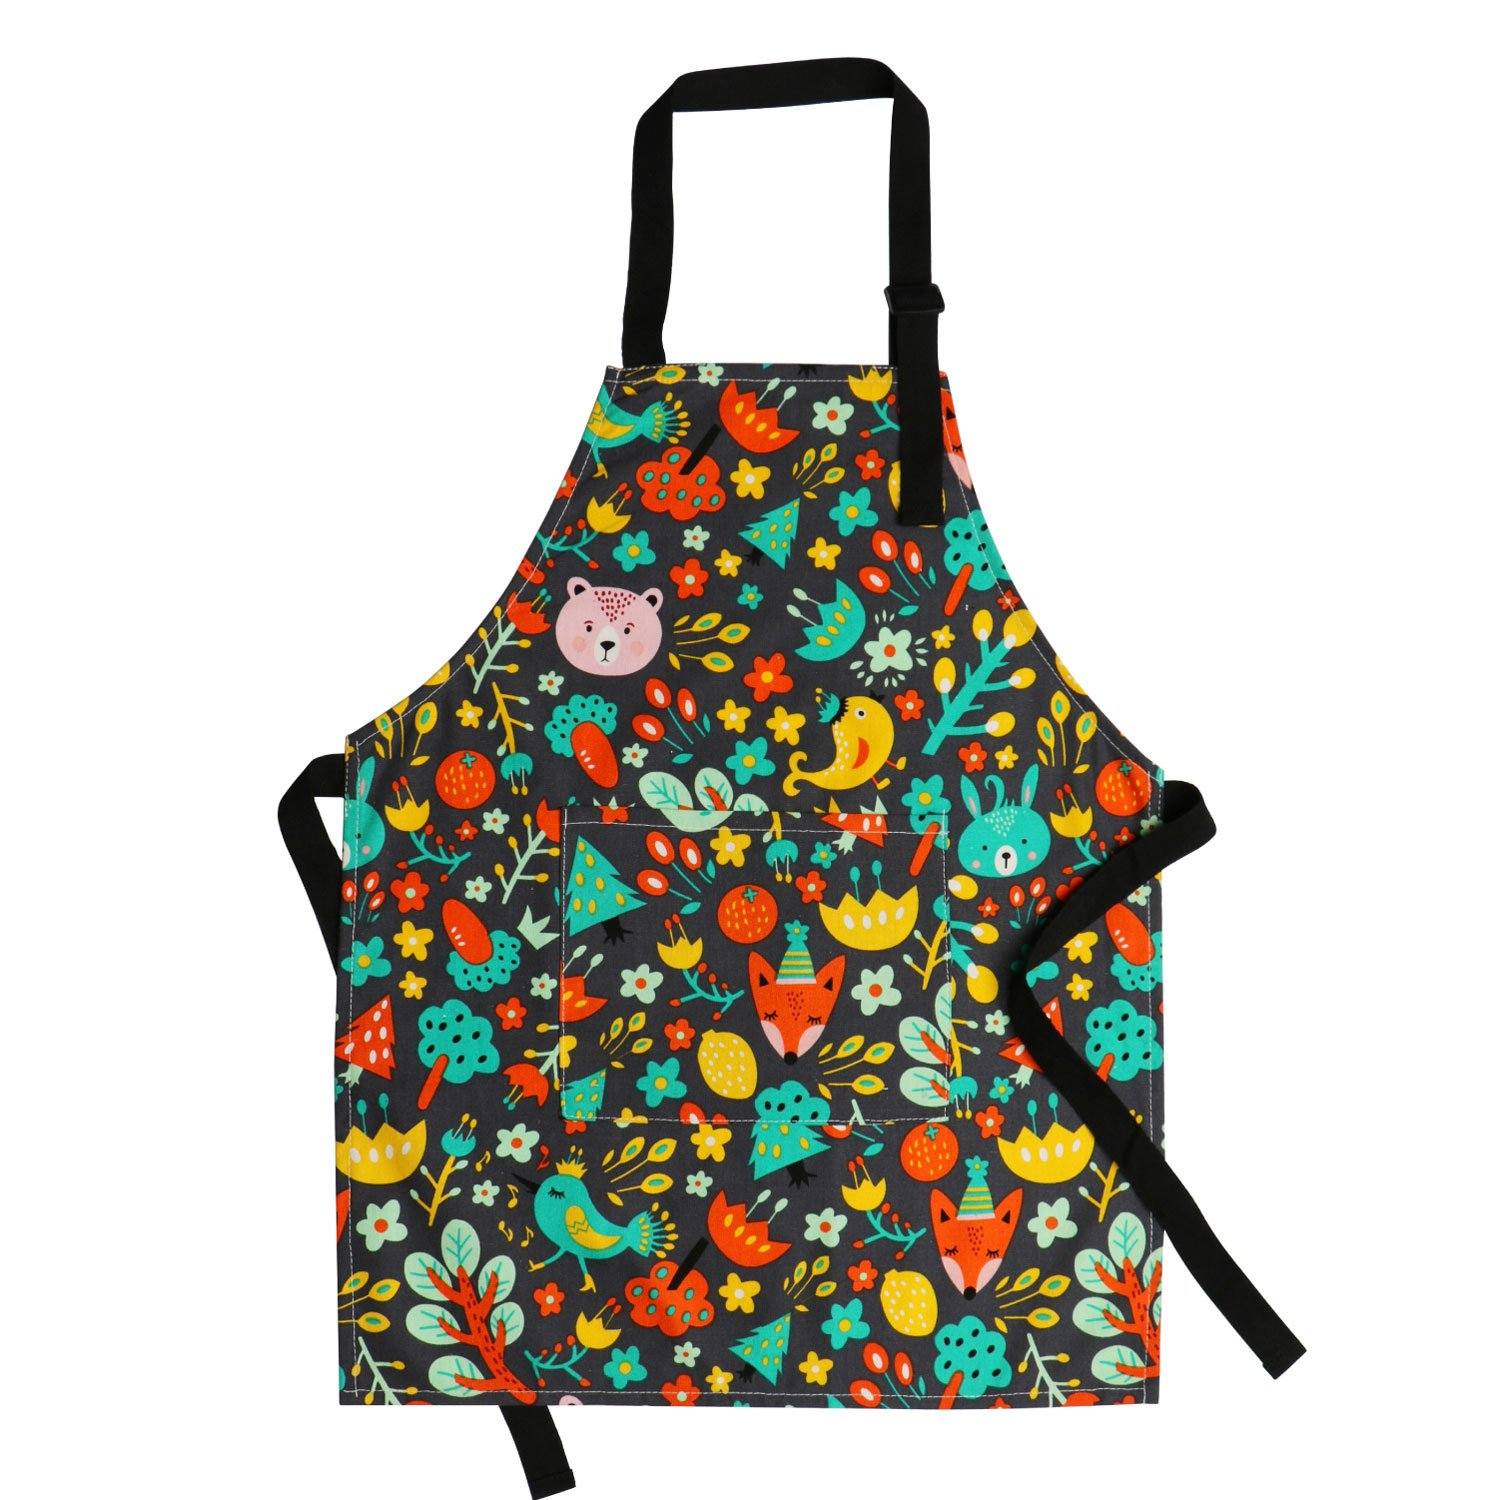 Kids Aprons, Cotton Children Aprons with Adjustable Neck Strap Child Chef Aprons